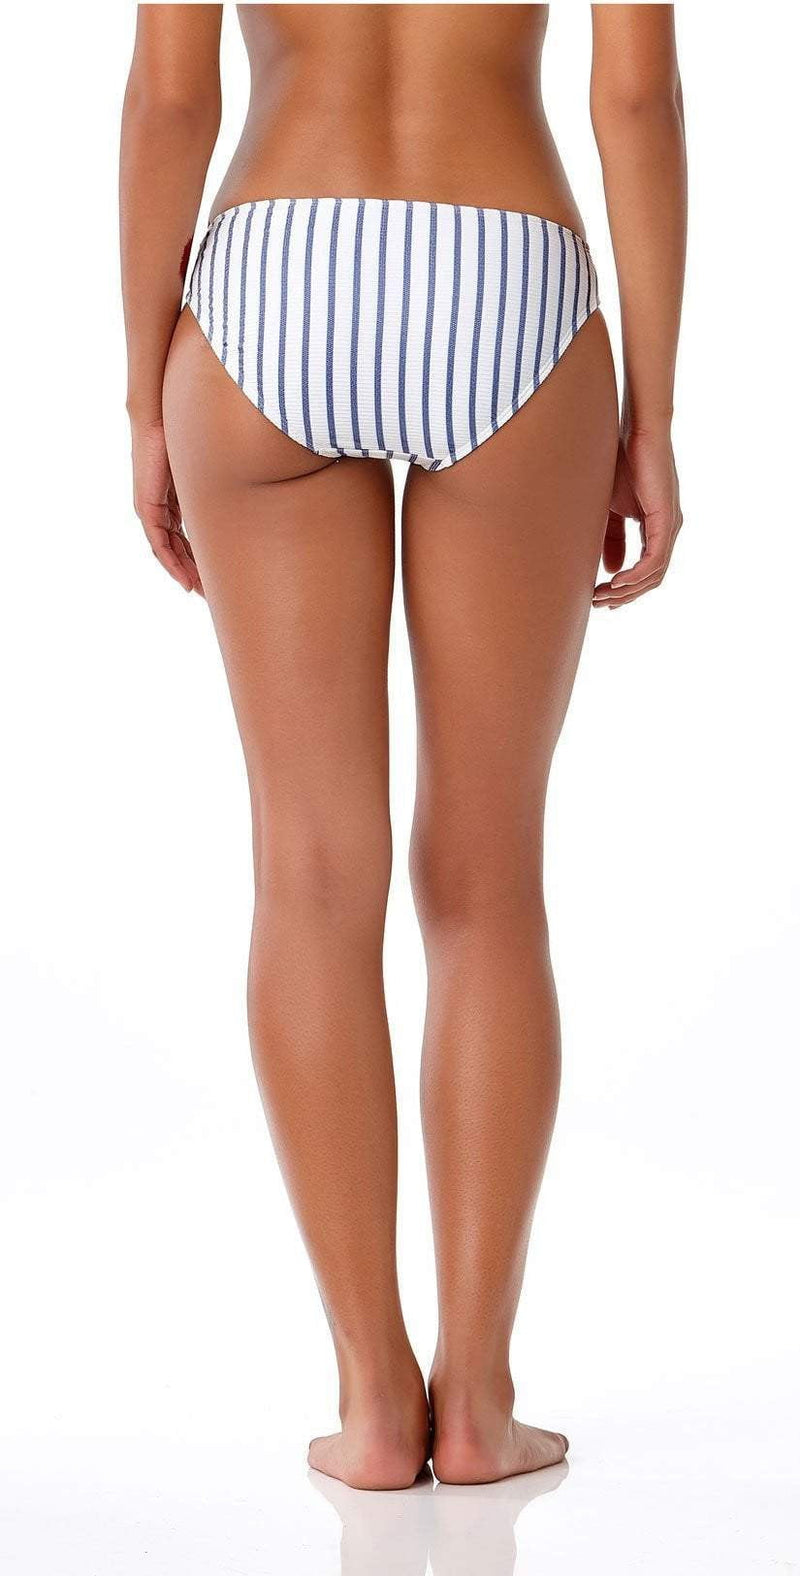 Anne Cole Studio Full Bottom In Blue Stripe 18SB32202-BLST: